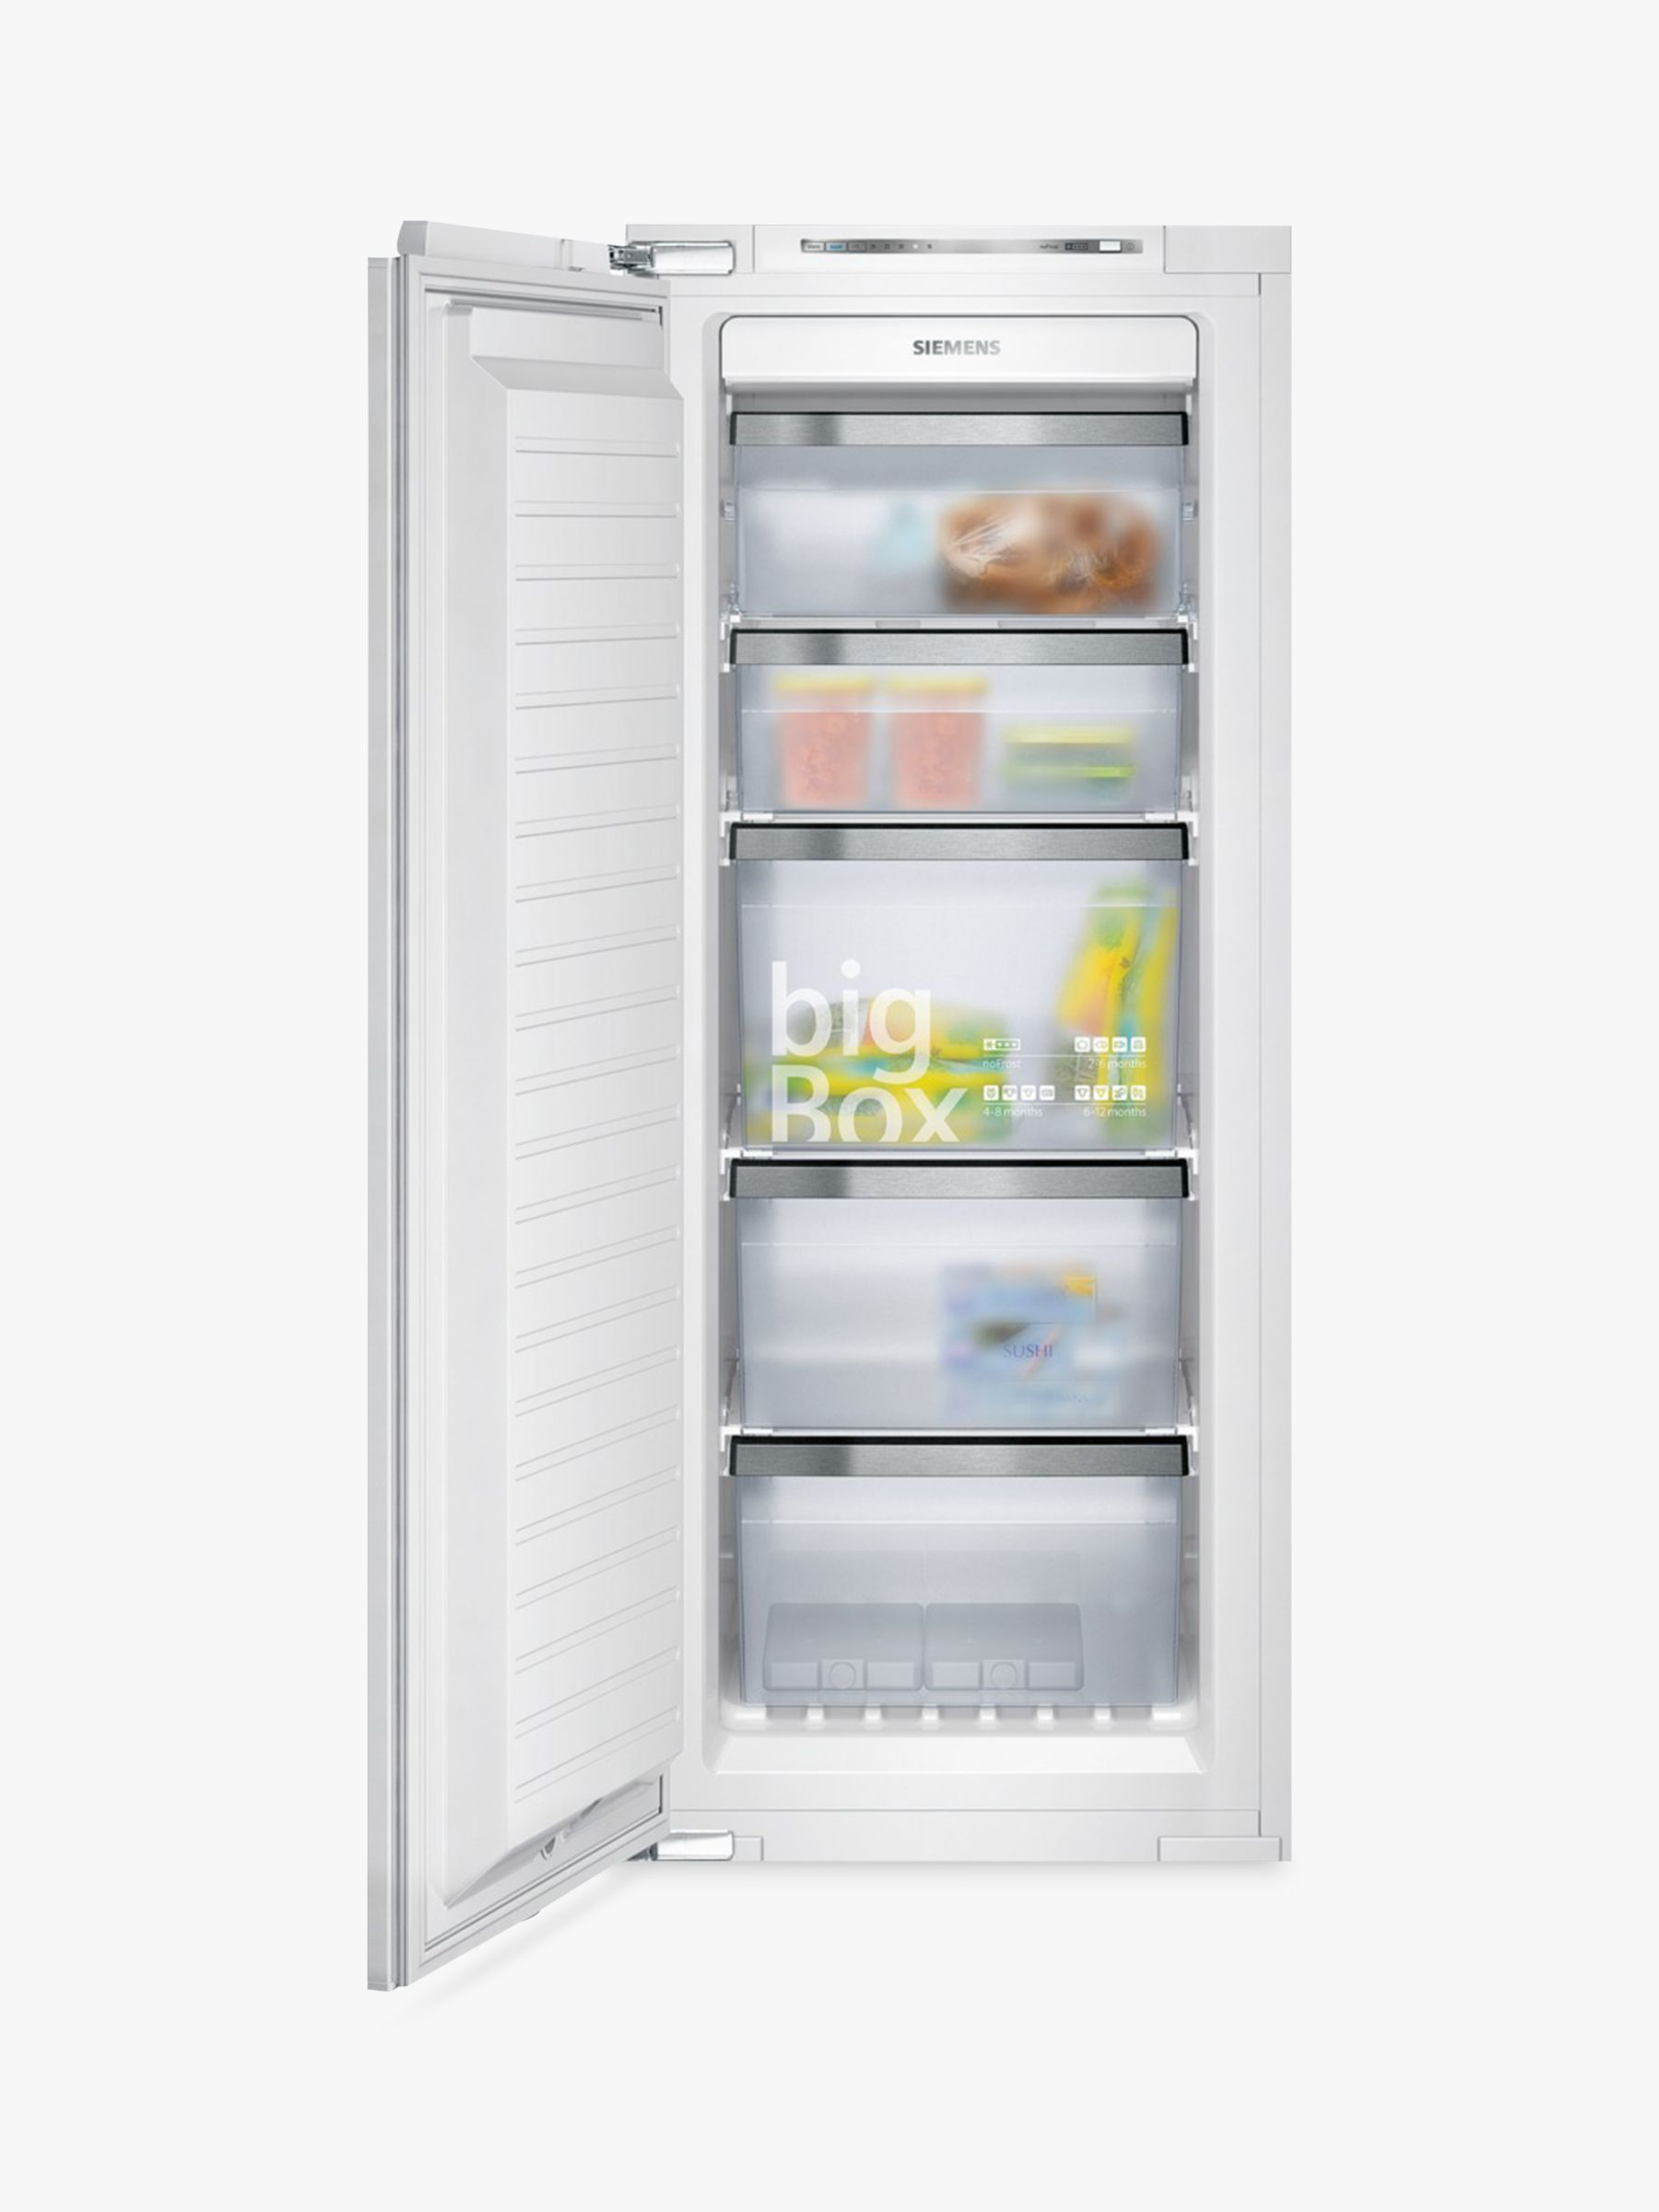 Siemens Siemens GI25NP60 Integrated Freezer, A++ Energy Rating, 56cm Wide